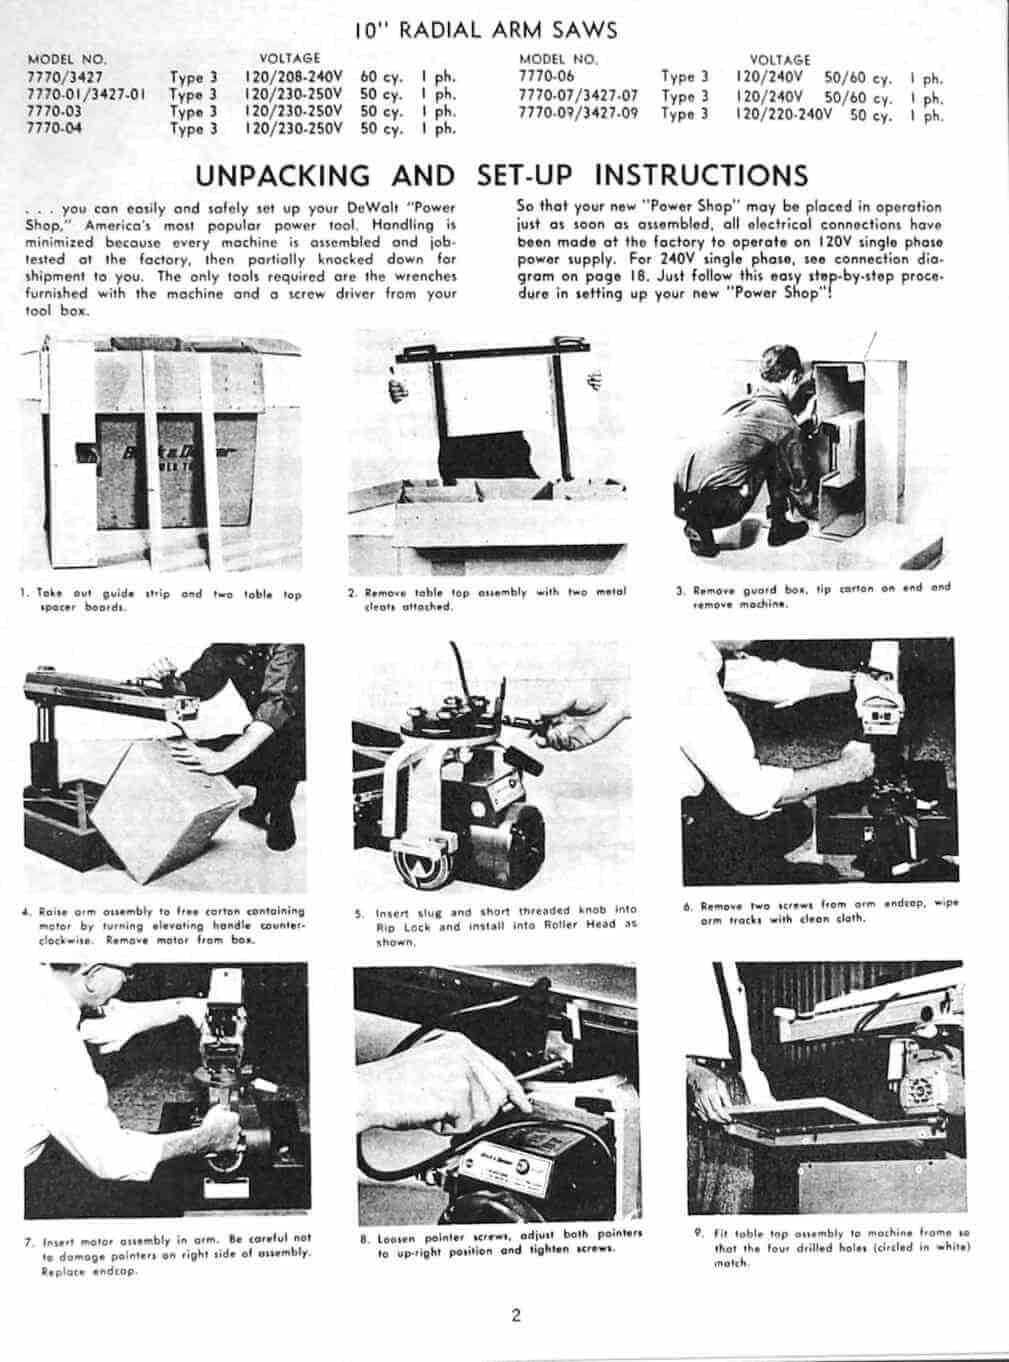 dewalt 7770 10 inch radial arm saw owner s instructions and parts rh ozarktoolmanuals com